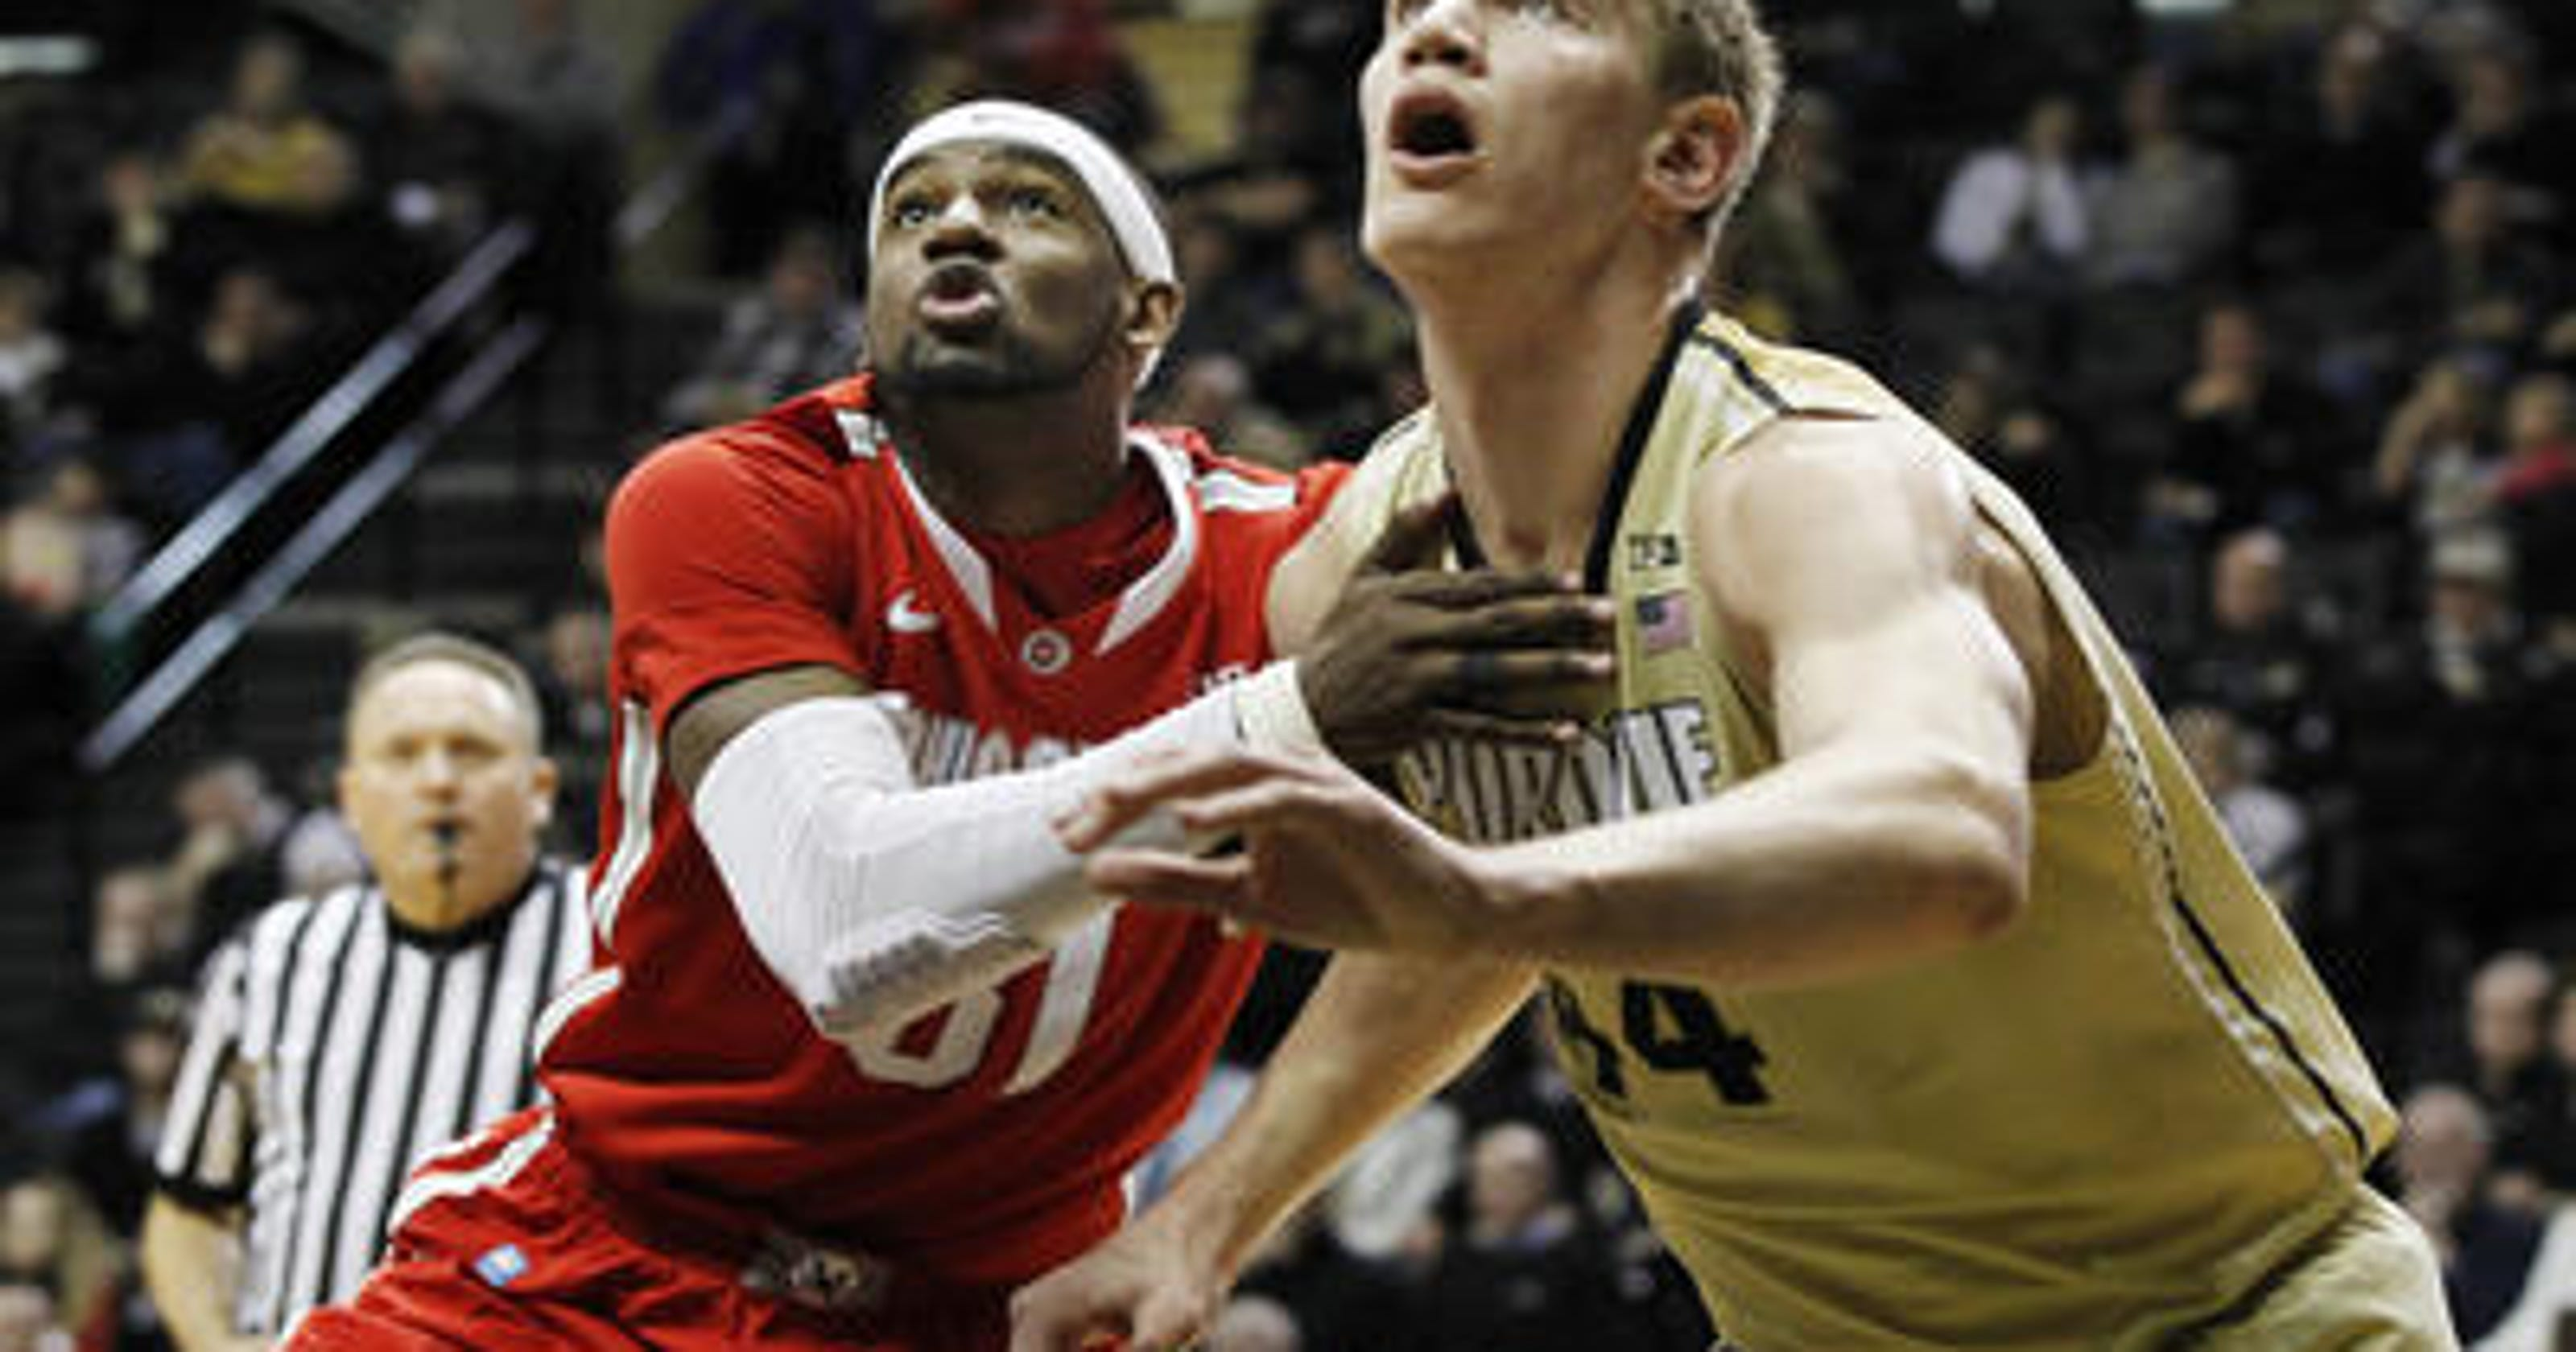 be5505ef3b28 Purdue centers battle for starting spot